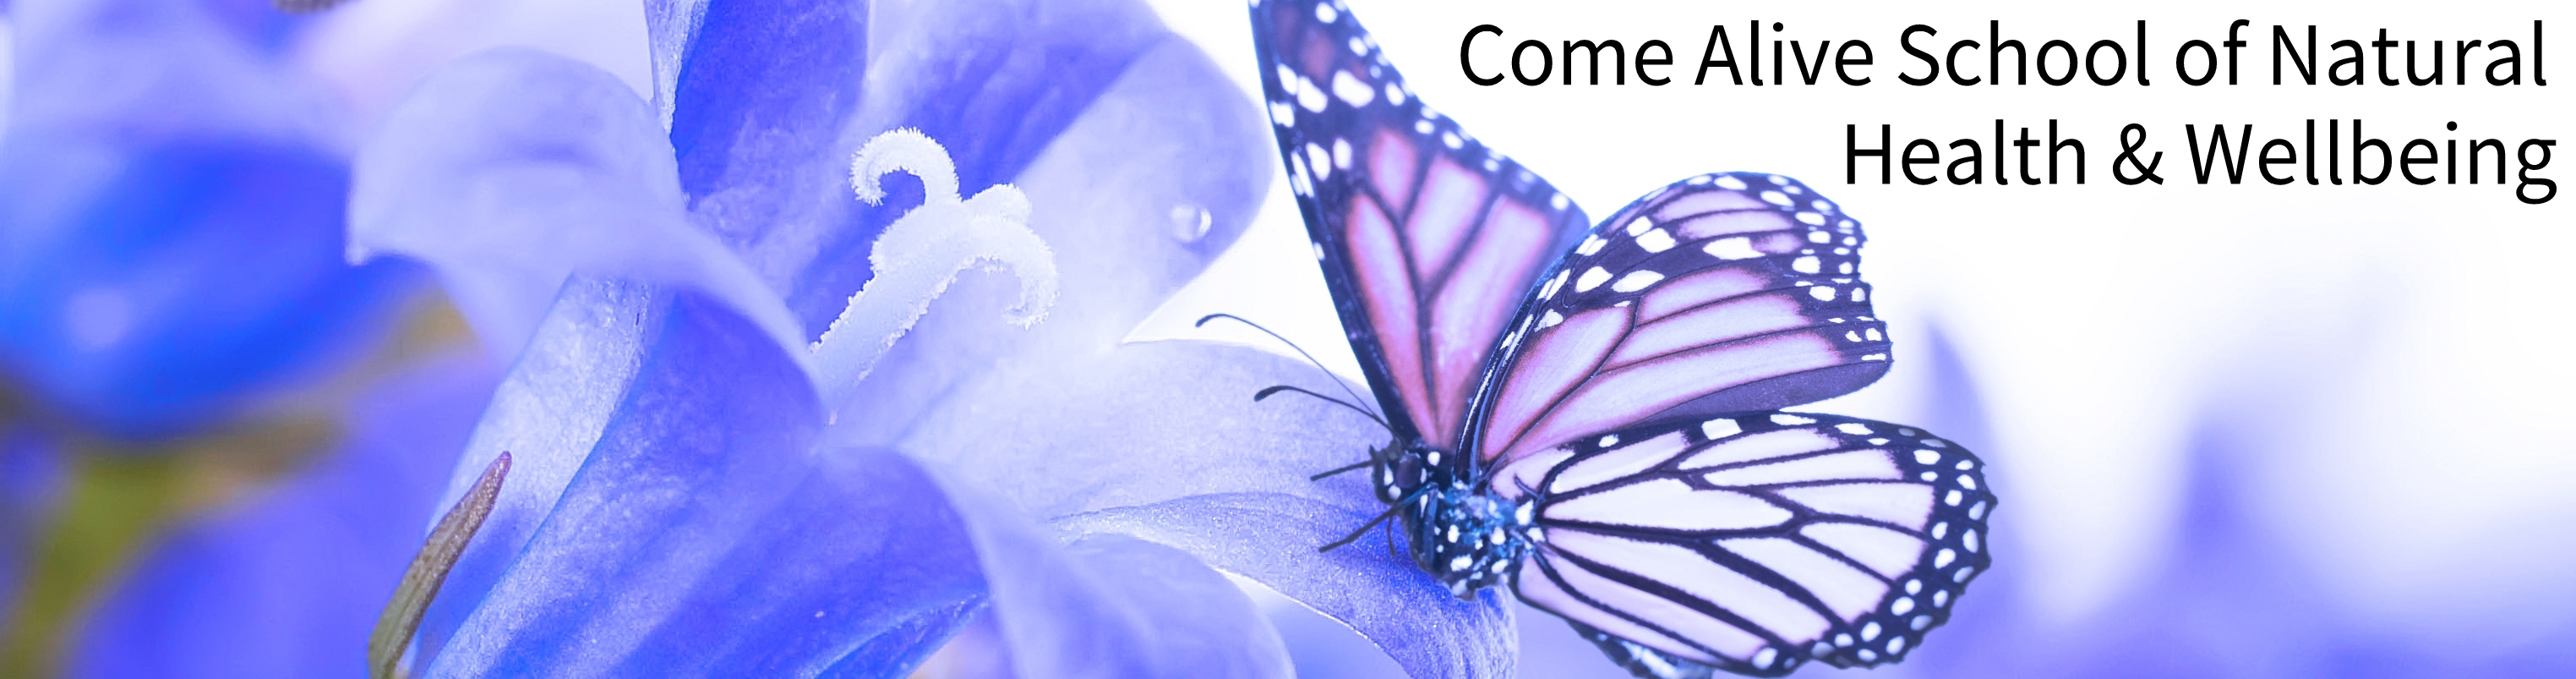 butterfly banner 9